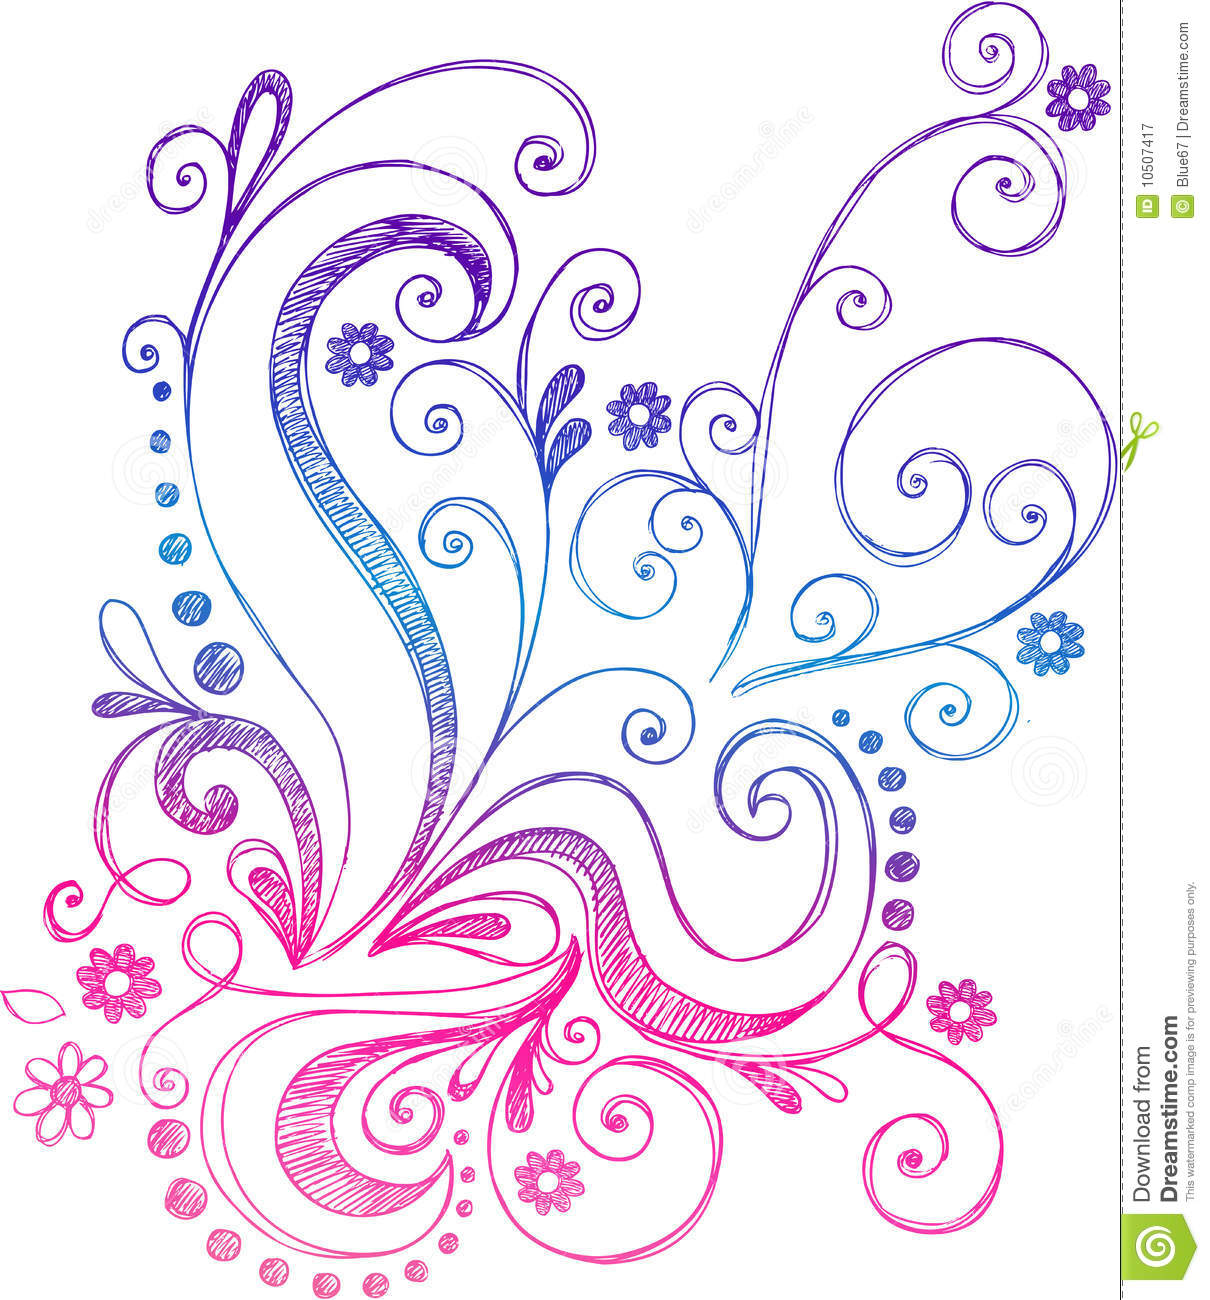 Sketchy Doodle Flowers And Vines Vector Stock Vector